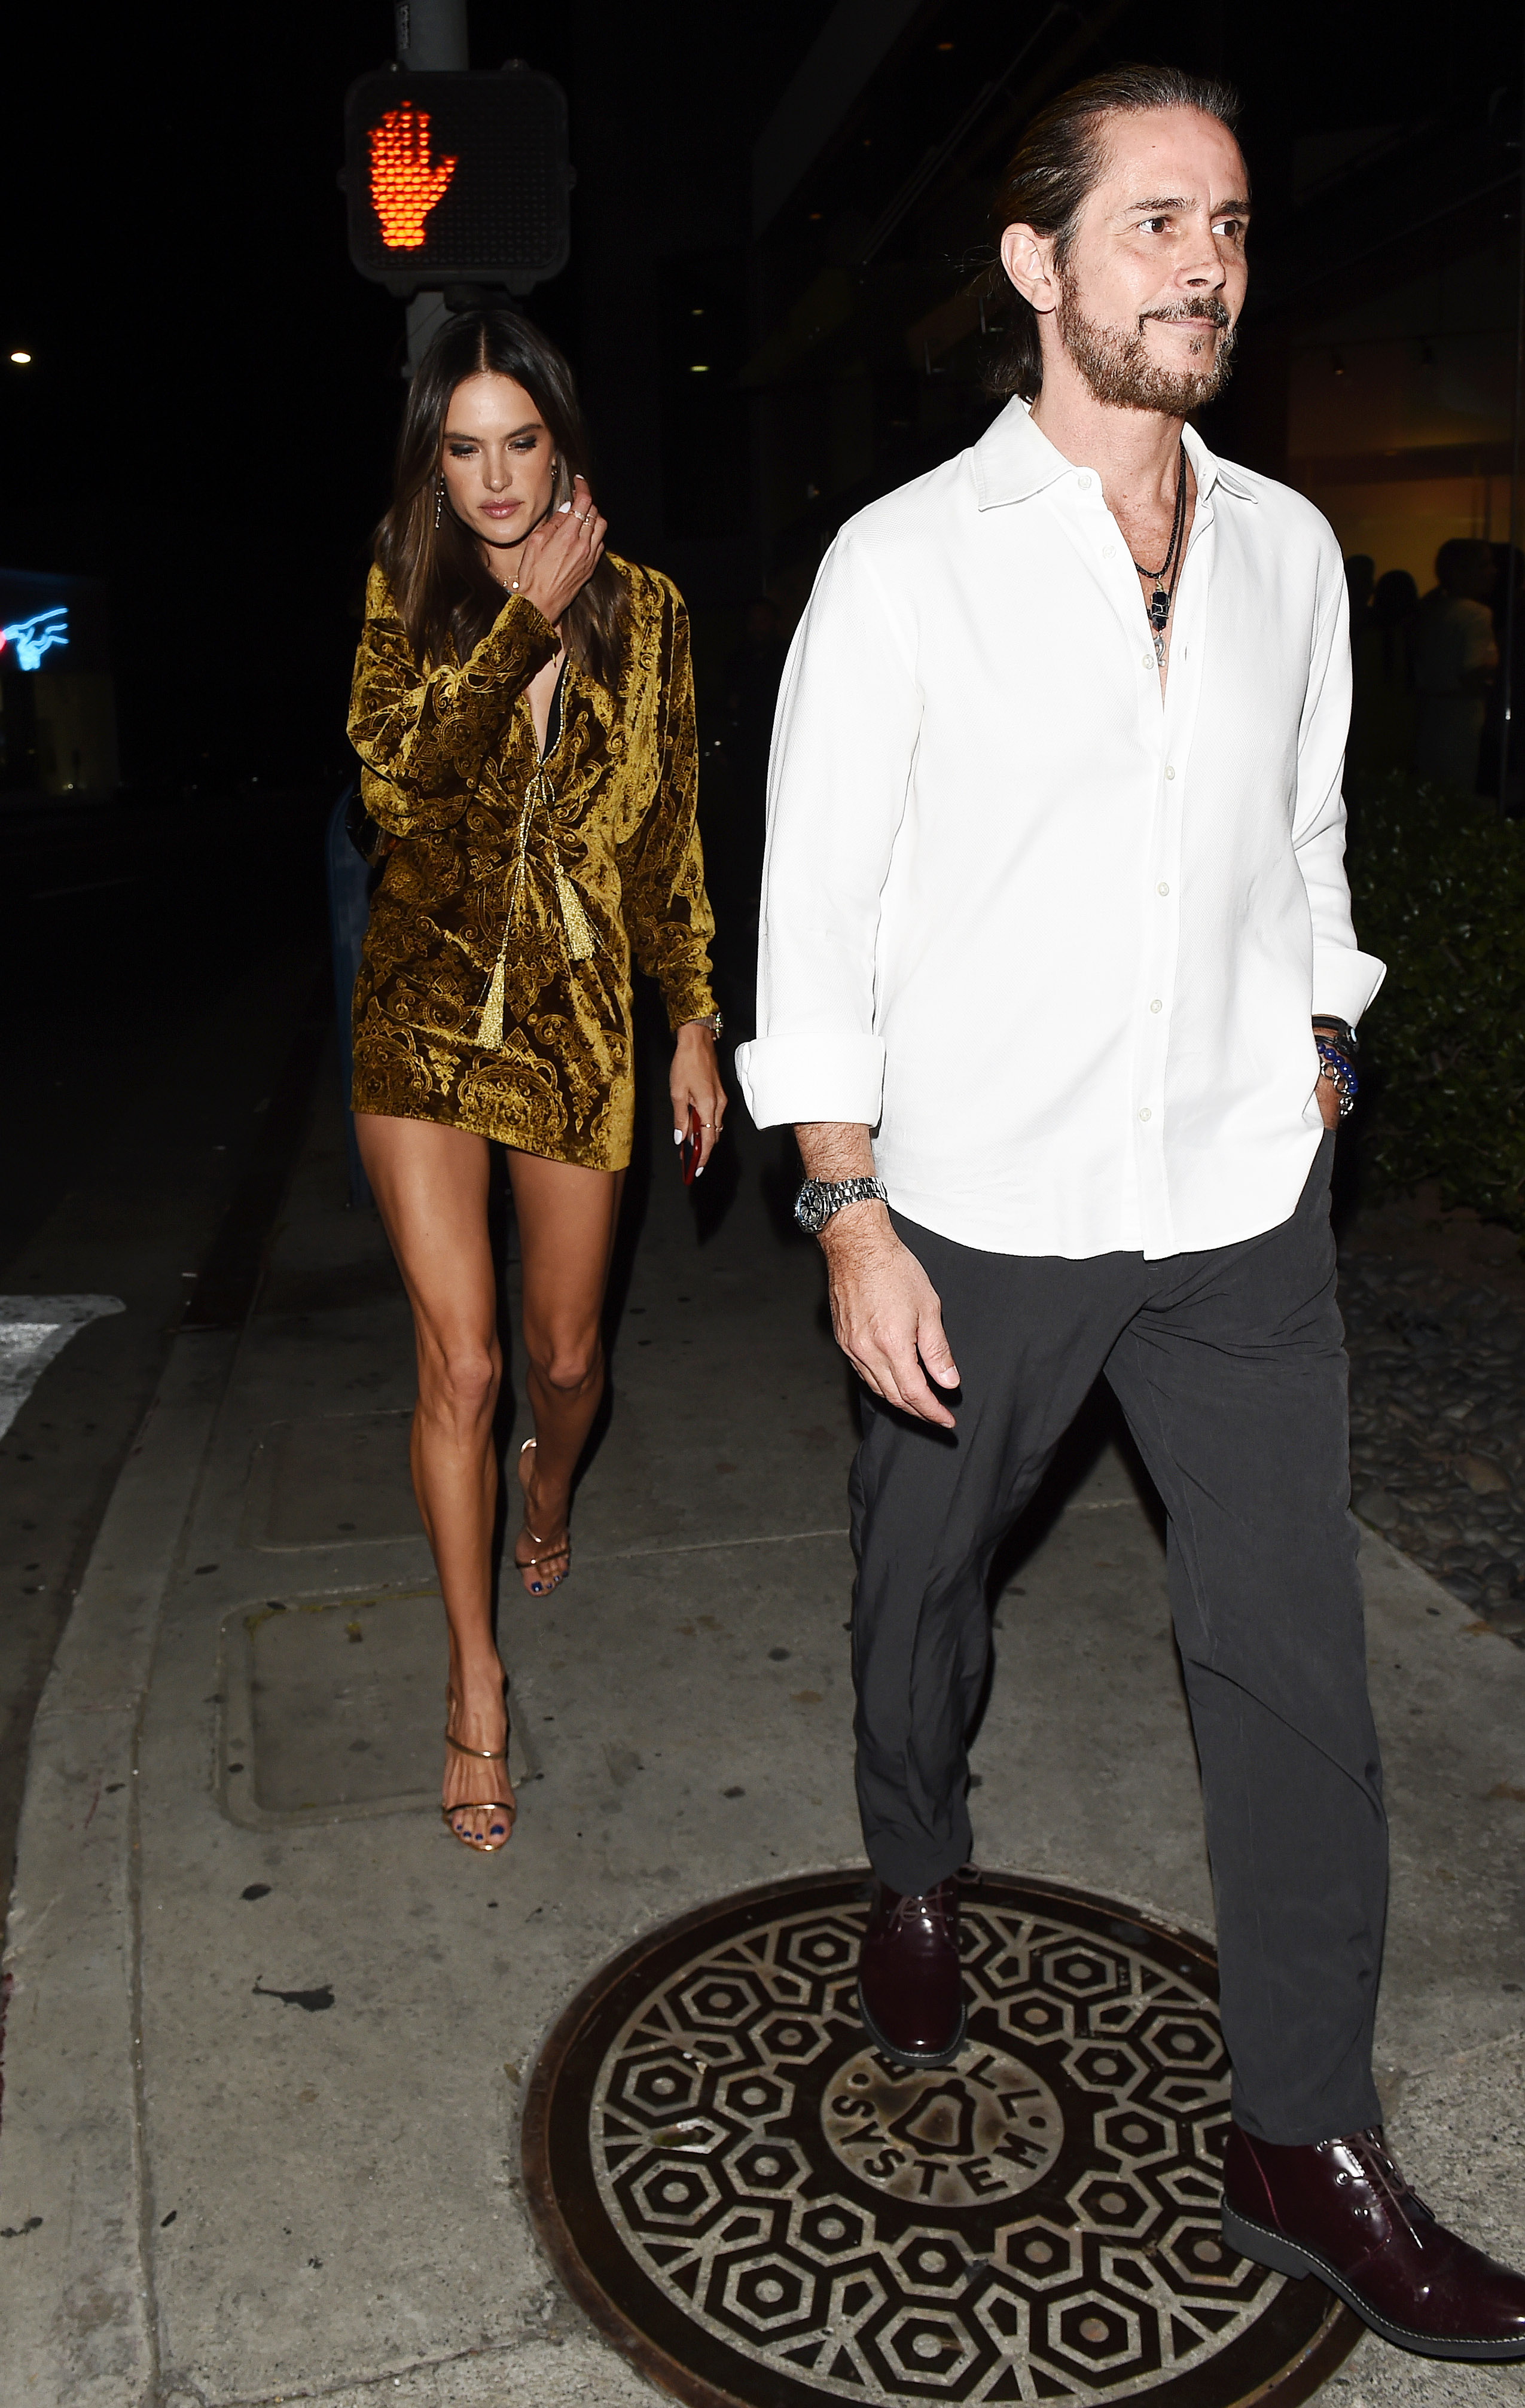 Alessandra Ambrosio Leaving DUNDAS Traveling Flagship cocktail party in Los Angeles <P> Pictured: Alessandra Ambrosio and Mystery Man <B>Ref: SPL1687421  240418  </B><BR/> Picture by: SAF / Splash News<BR/> </P><P> <B>Splash News and Pictures</B><BR/> Los Angeles:310-821-2666<BR/> New York:212-619-2666<BR/> London:870-934-2666<BR/> <span id=